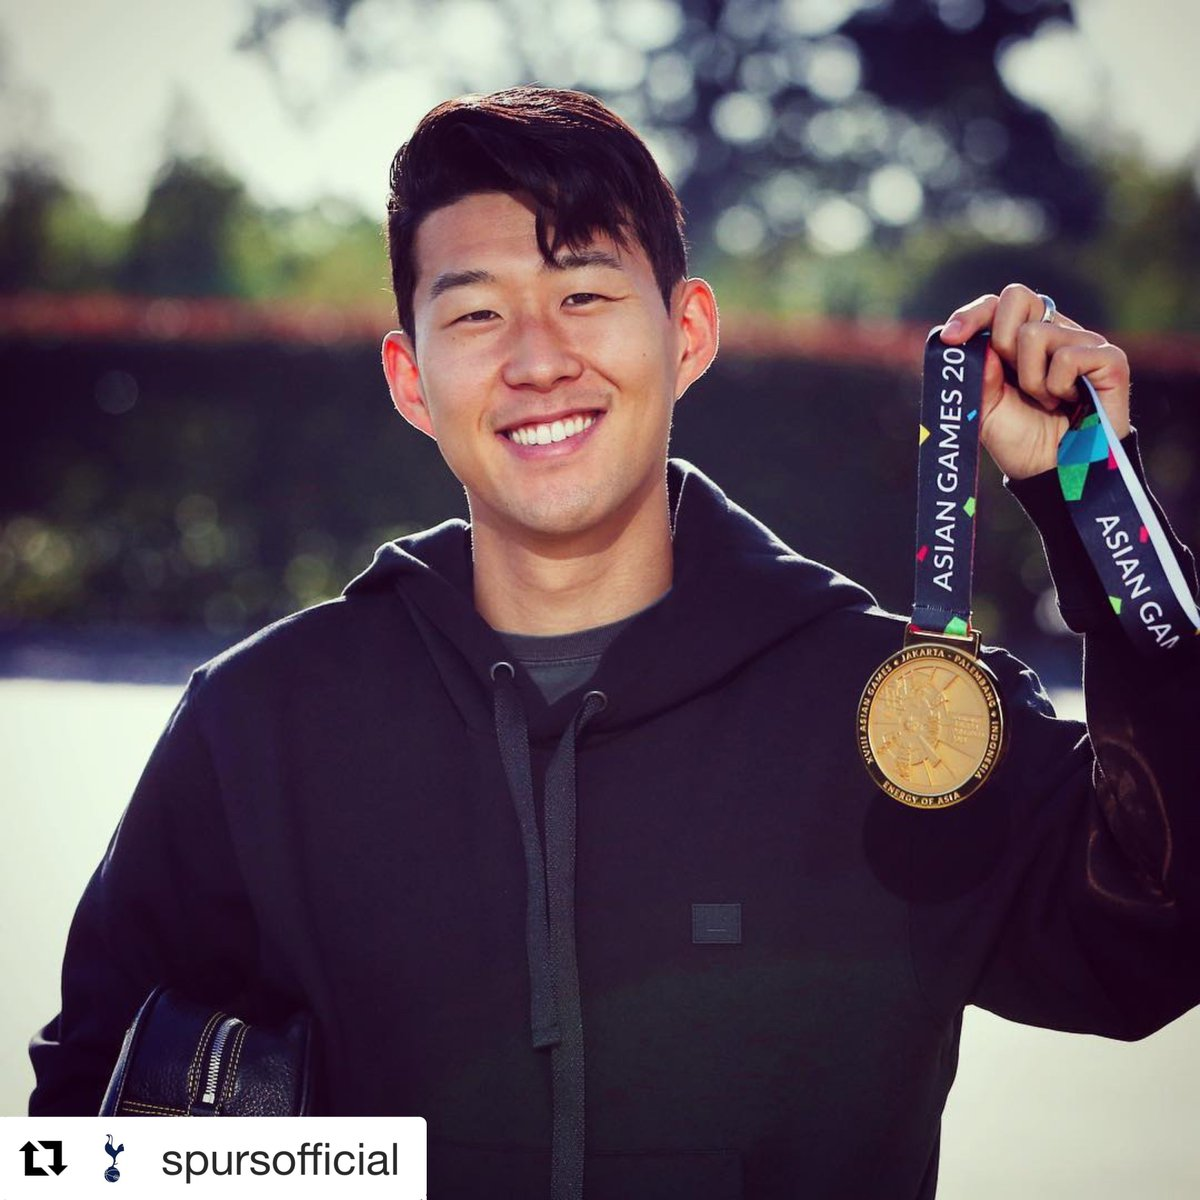 He's from Seoul but he's not a soldier 🎶🥇 (📸 via @SpursOfficial)